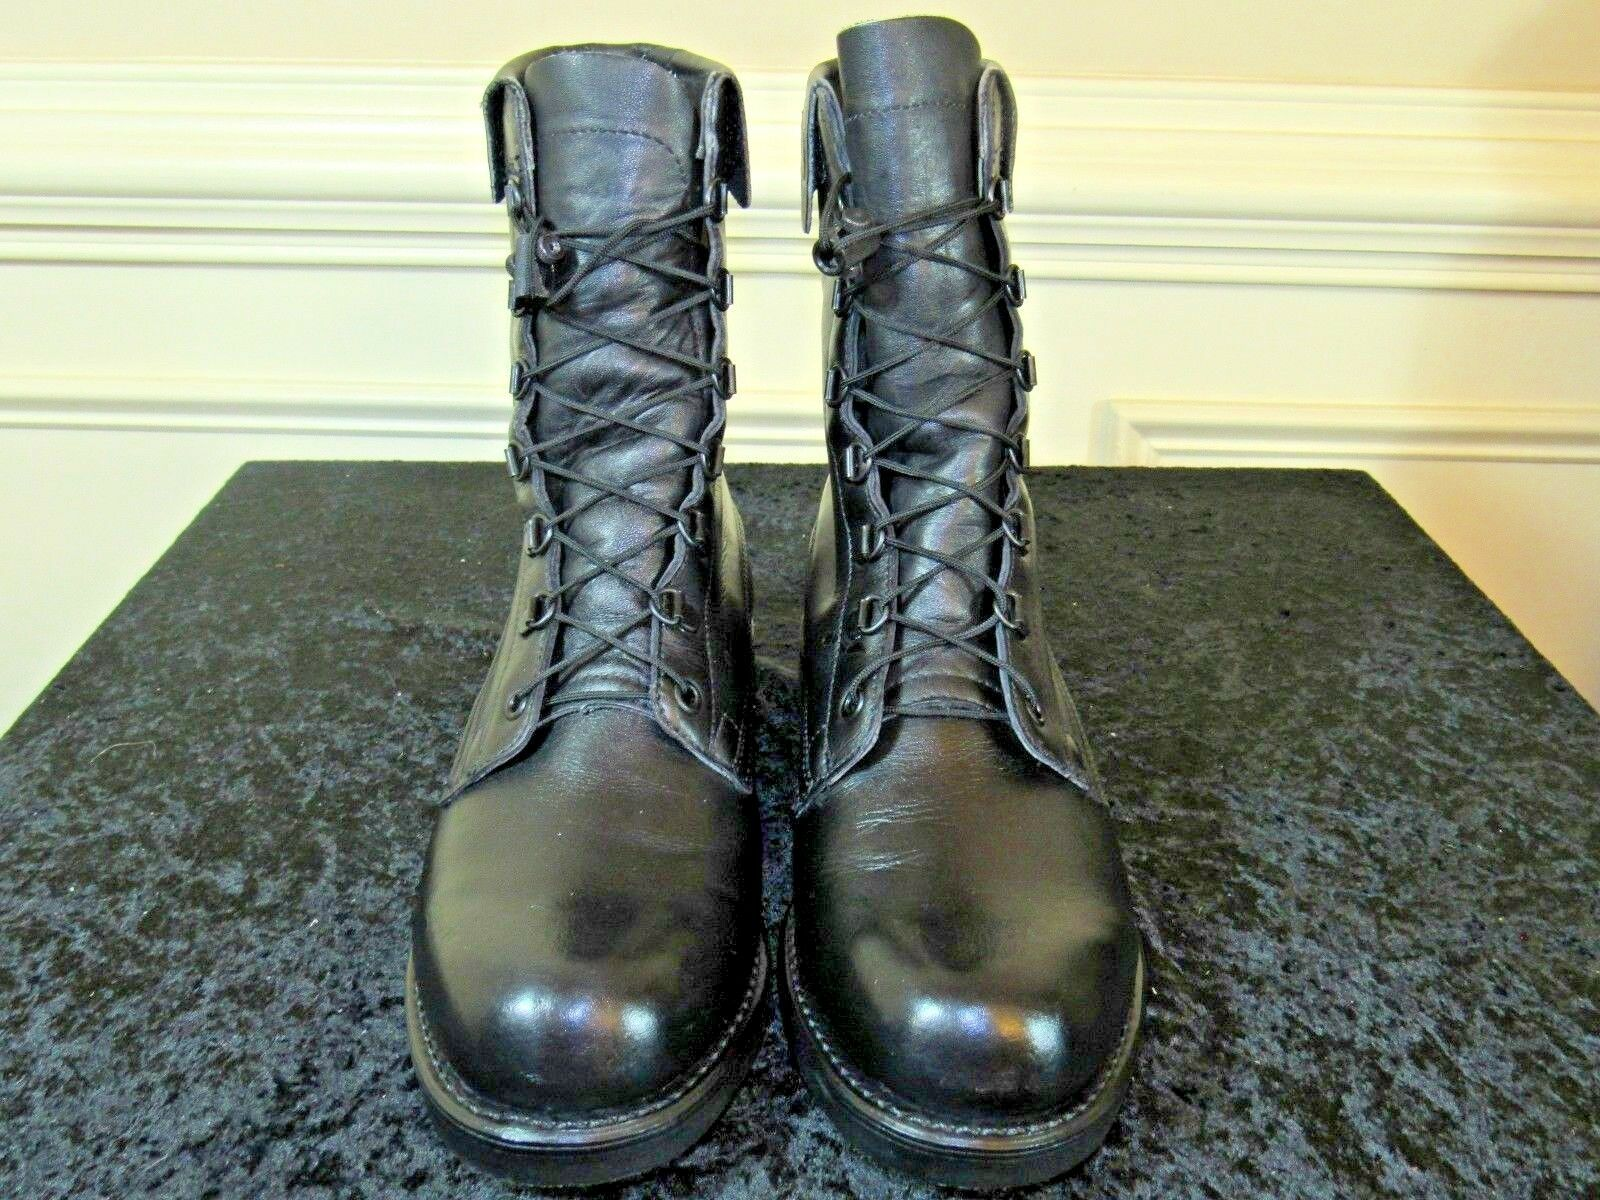 ADDISON Boot Co. Black Leather Combat Men's Casual Boots SIZE 8E